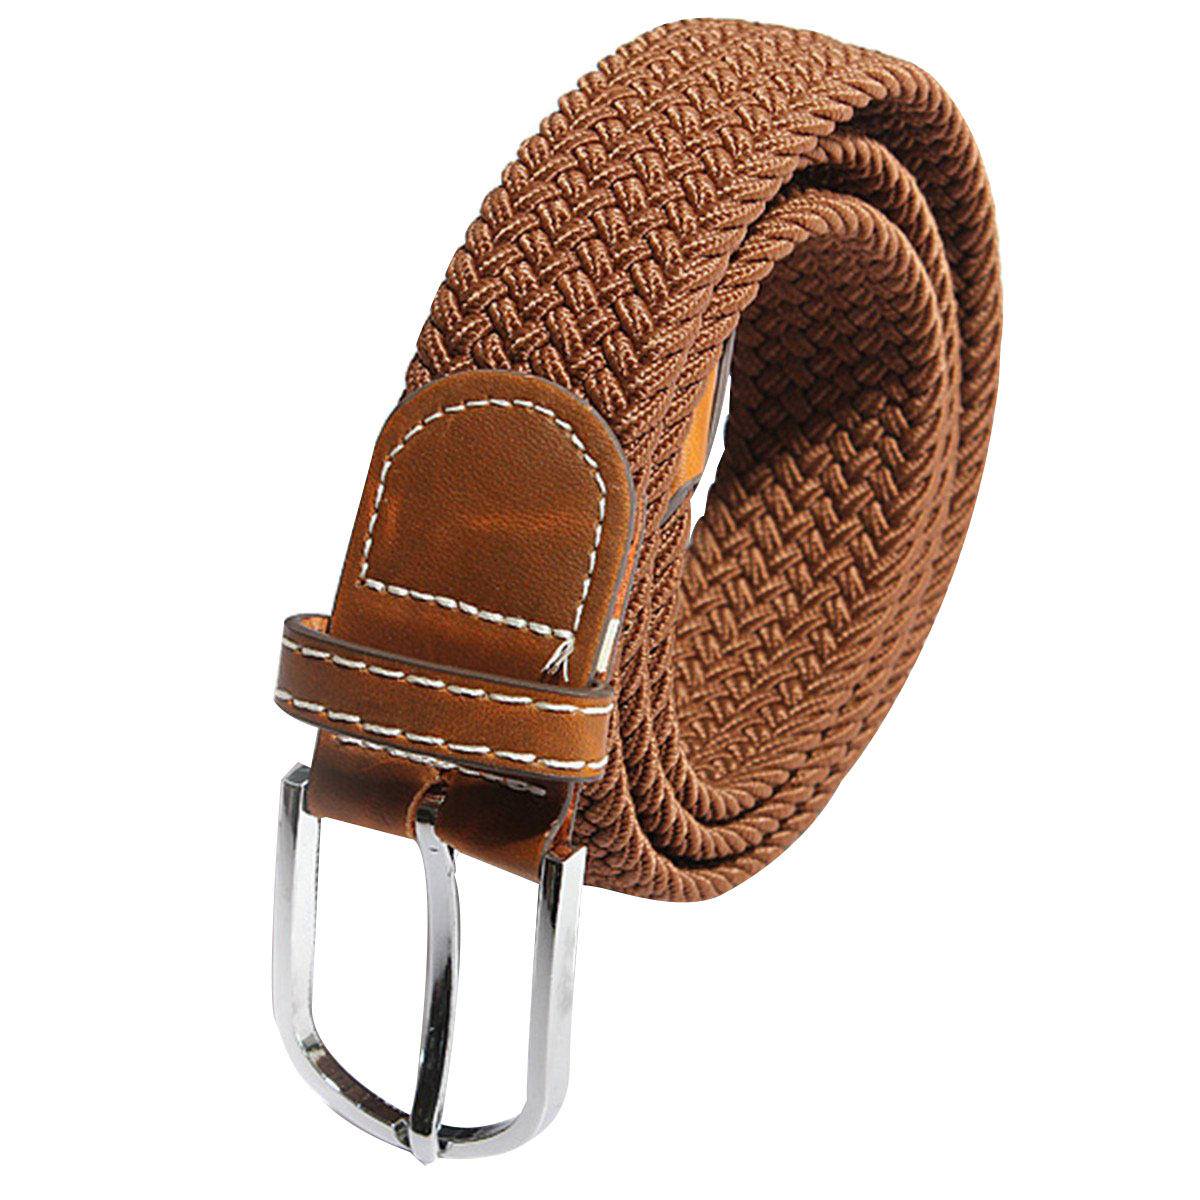 TFGS 10 x Unisex Men Women Stretch Braided Elastic Leather Buckle Belt Waistband brown